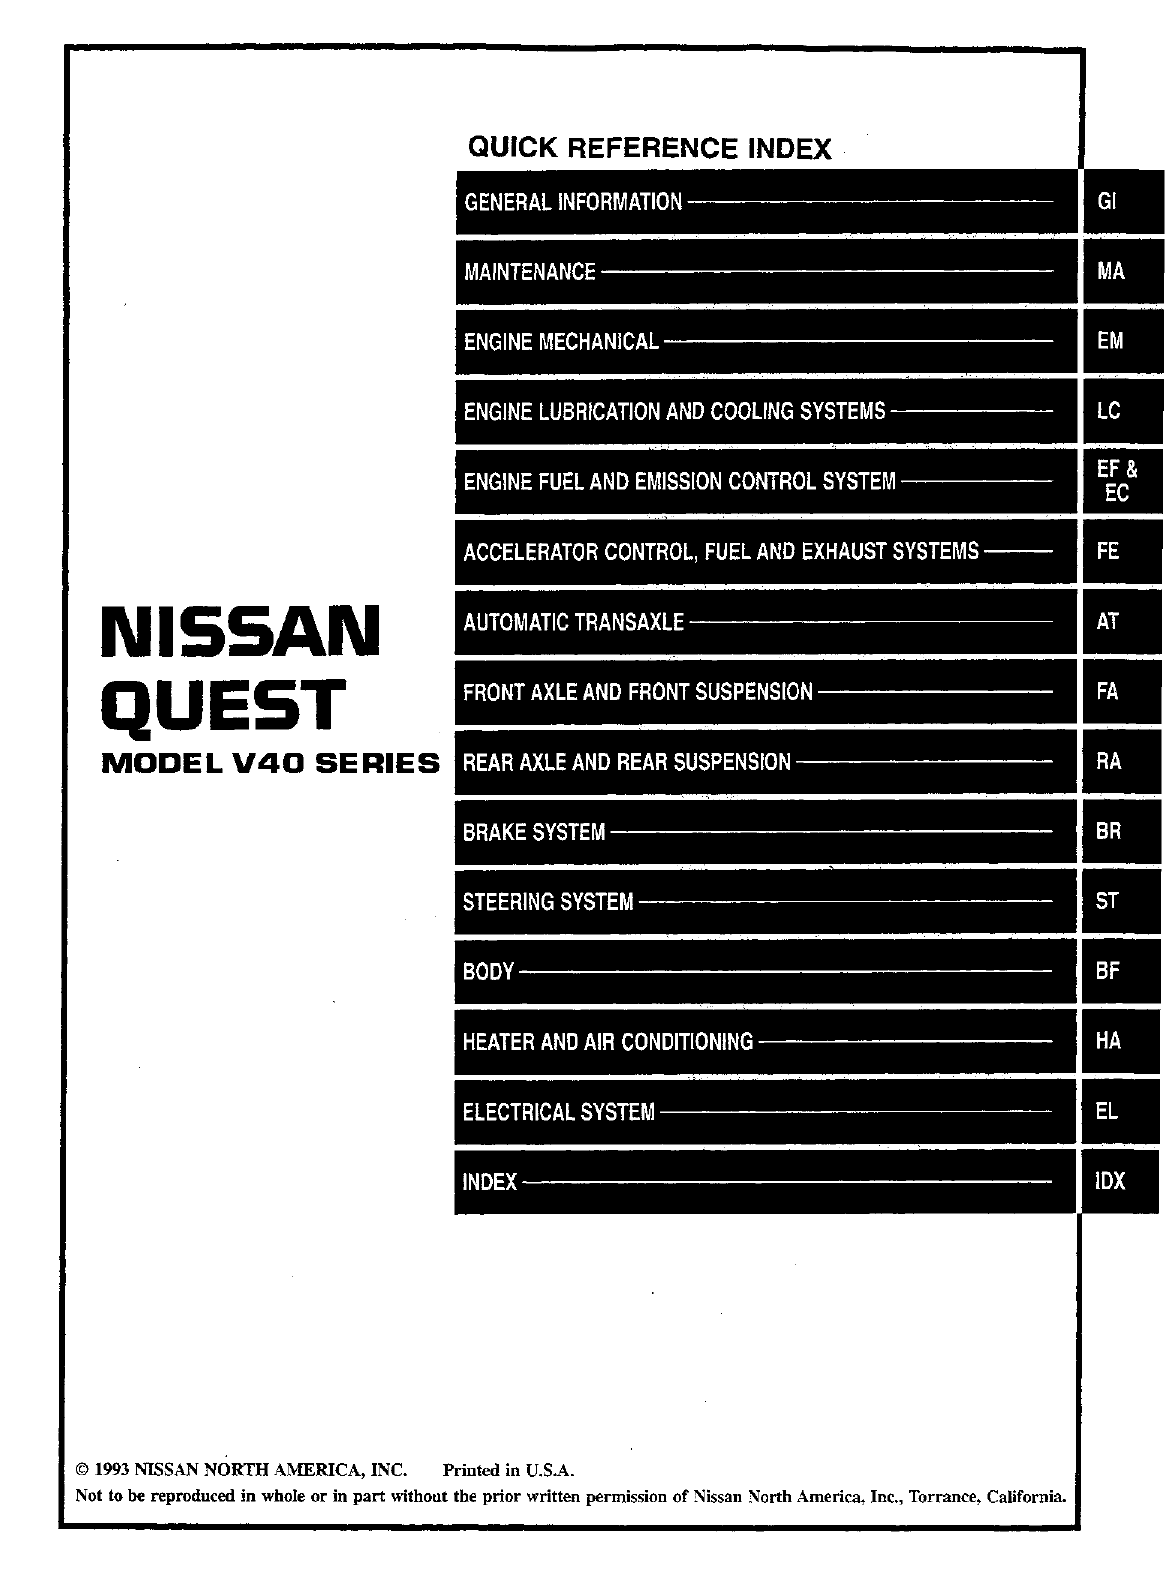 See our other Nissan Quest Manuals: Nissan Quest 2011 Model E52 Series Service  Repair Manual · Nissan Quest 1996 Owners Manual